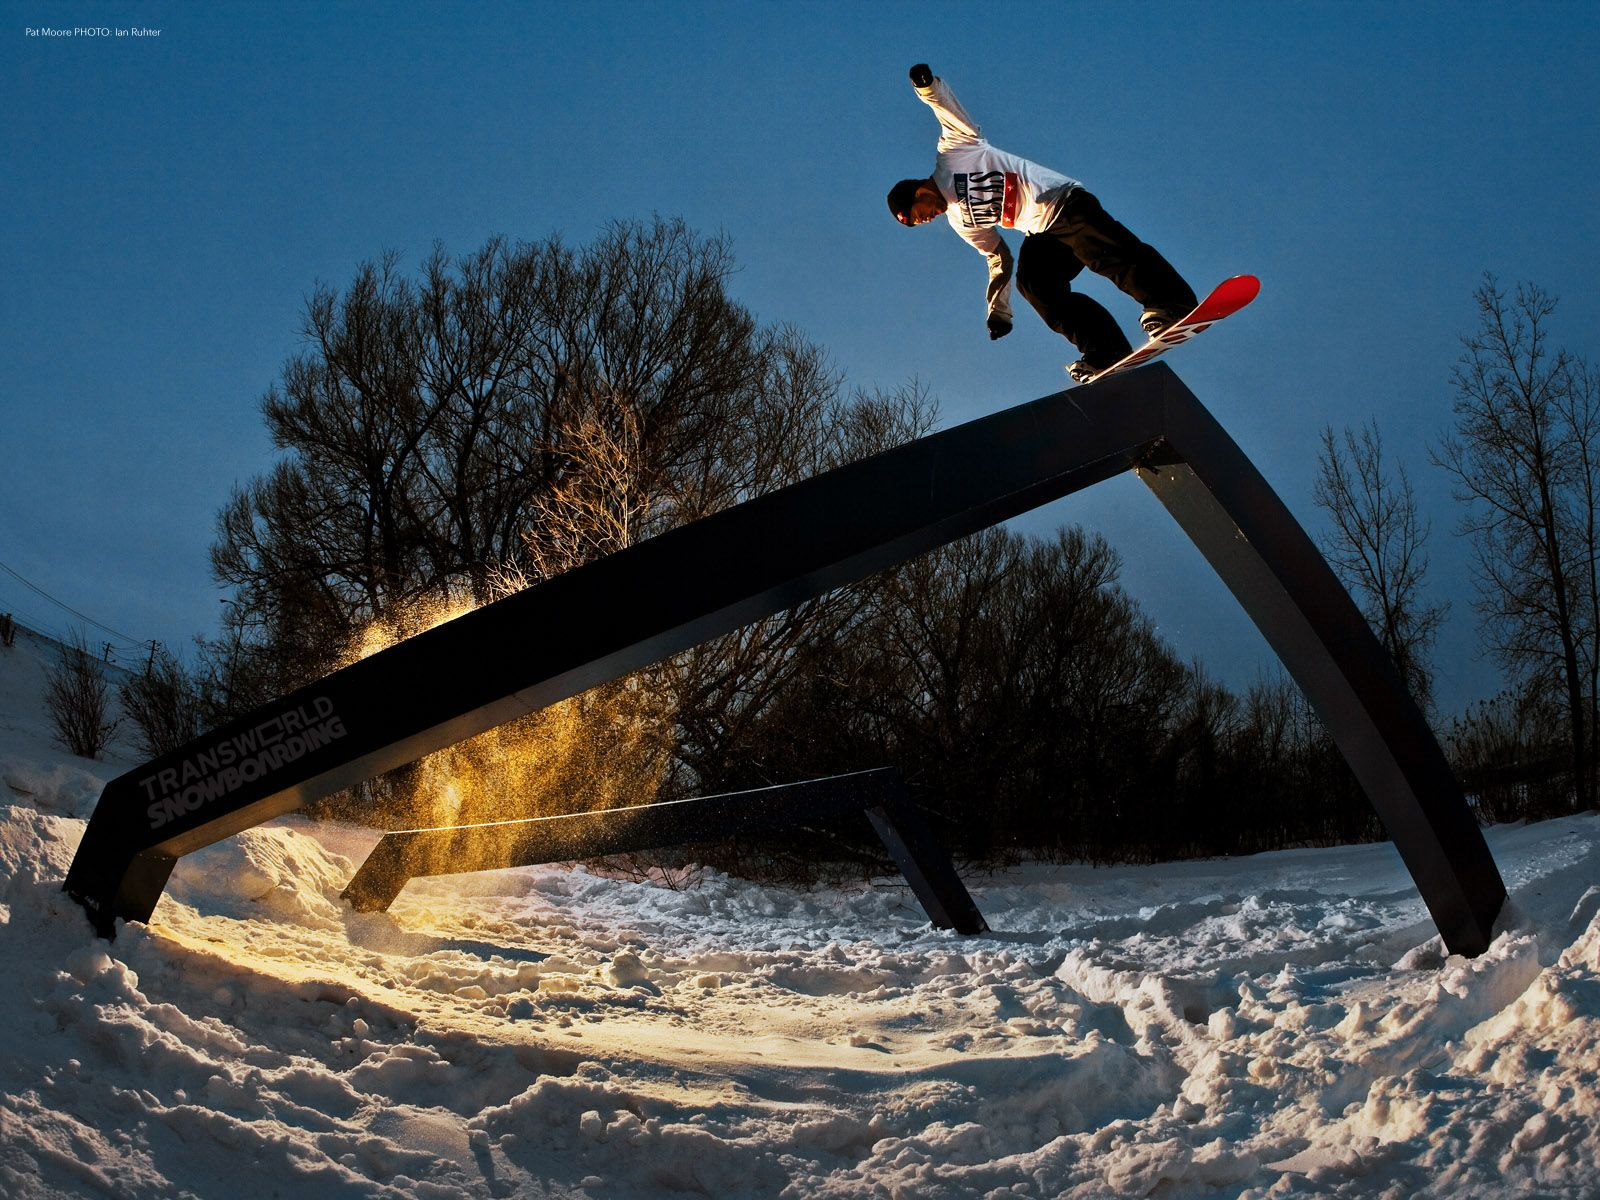 snowboarding_wallpaper_077